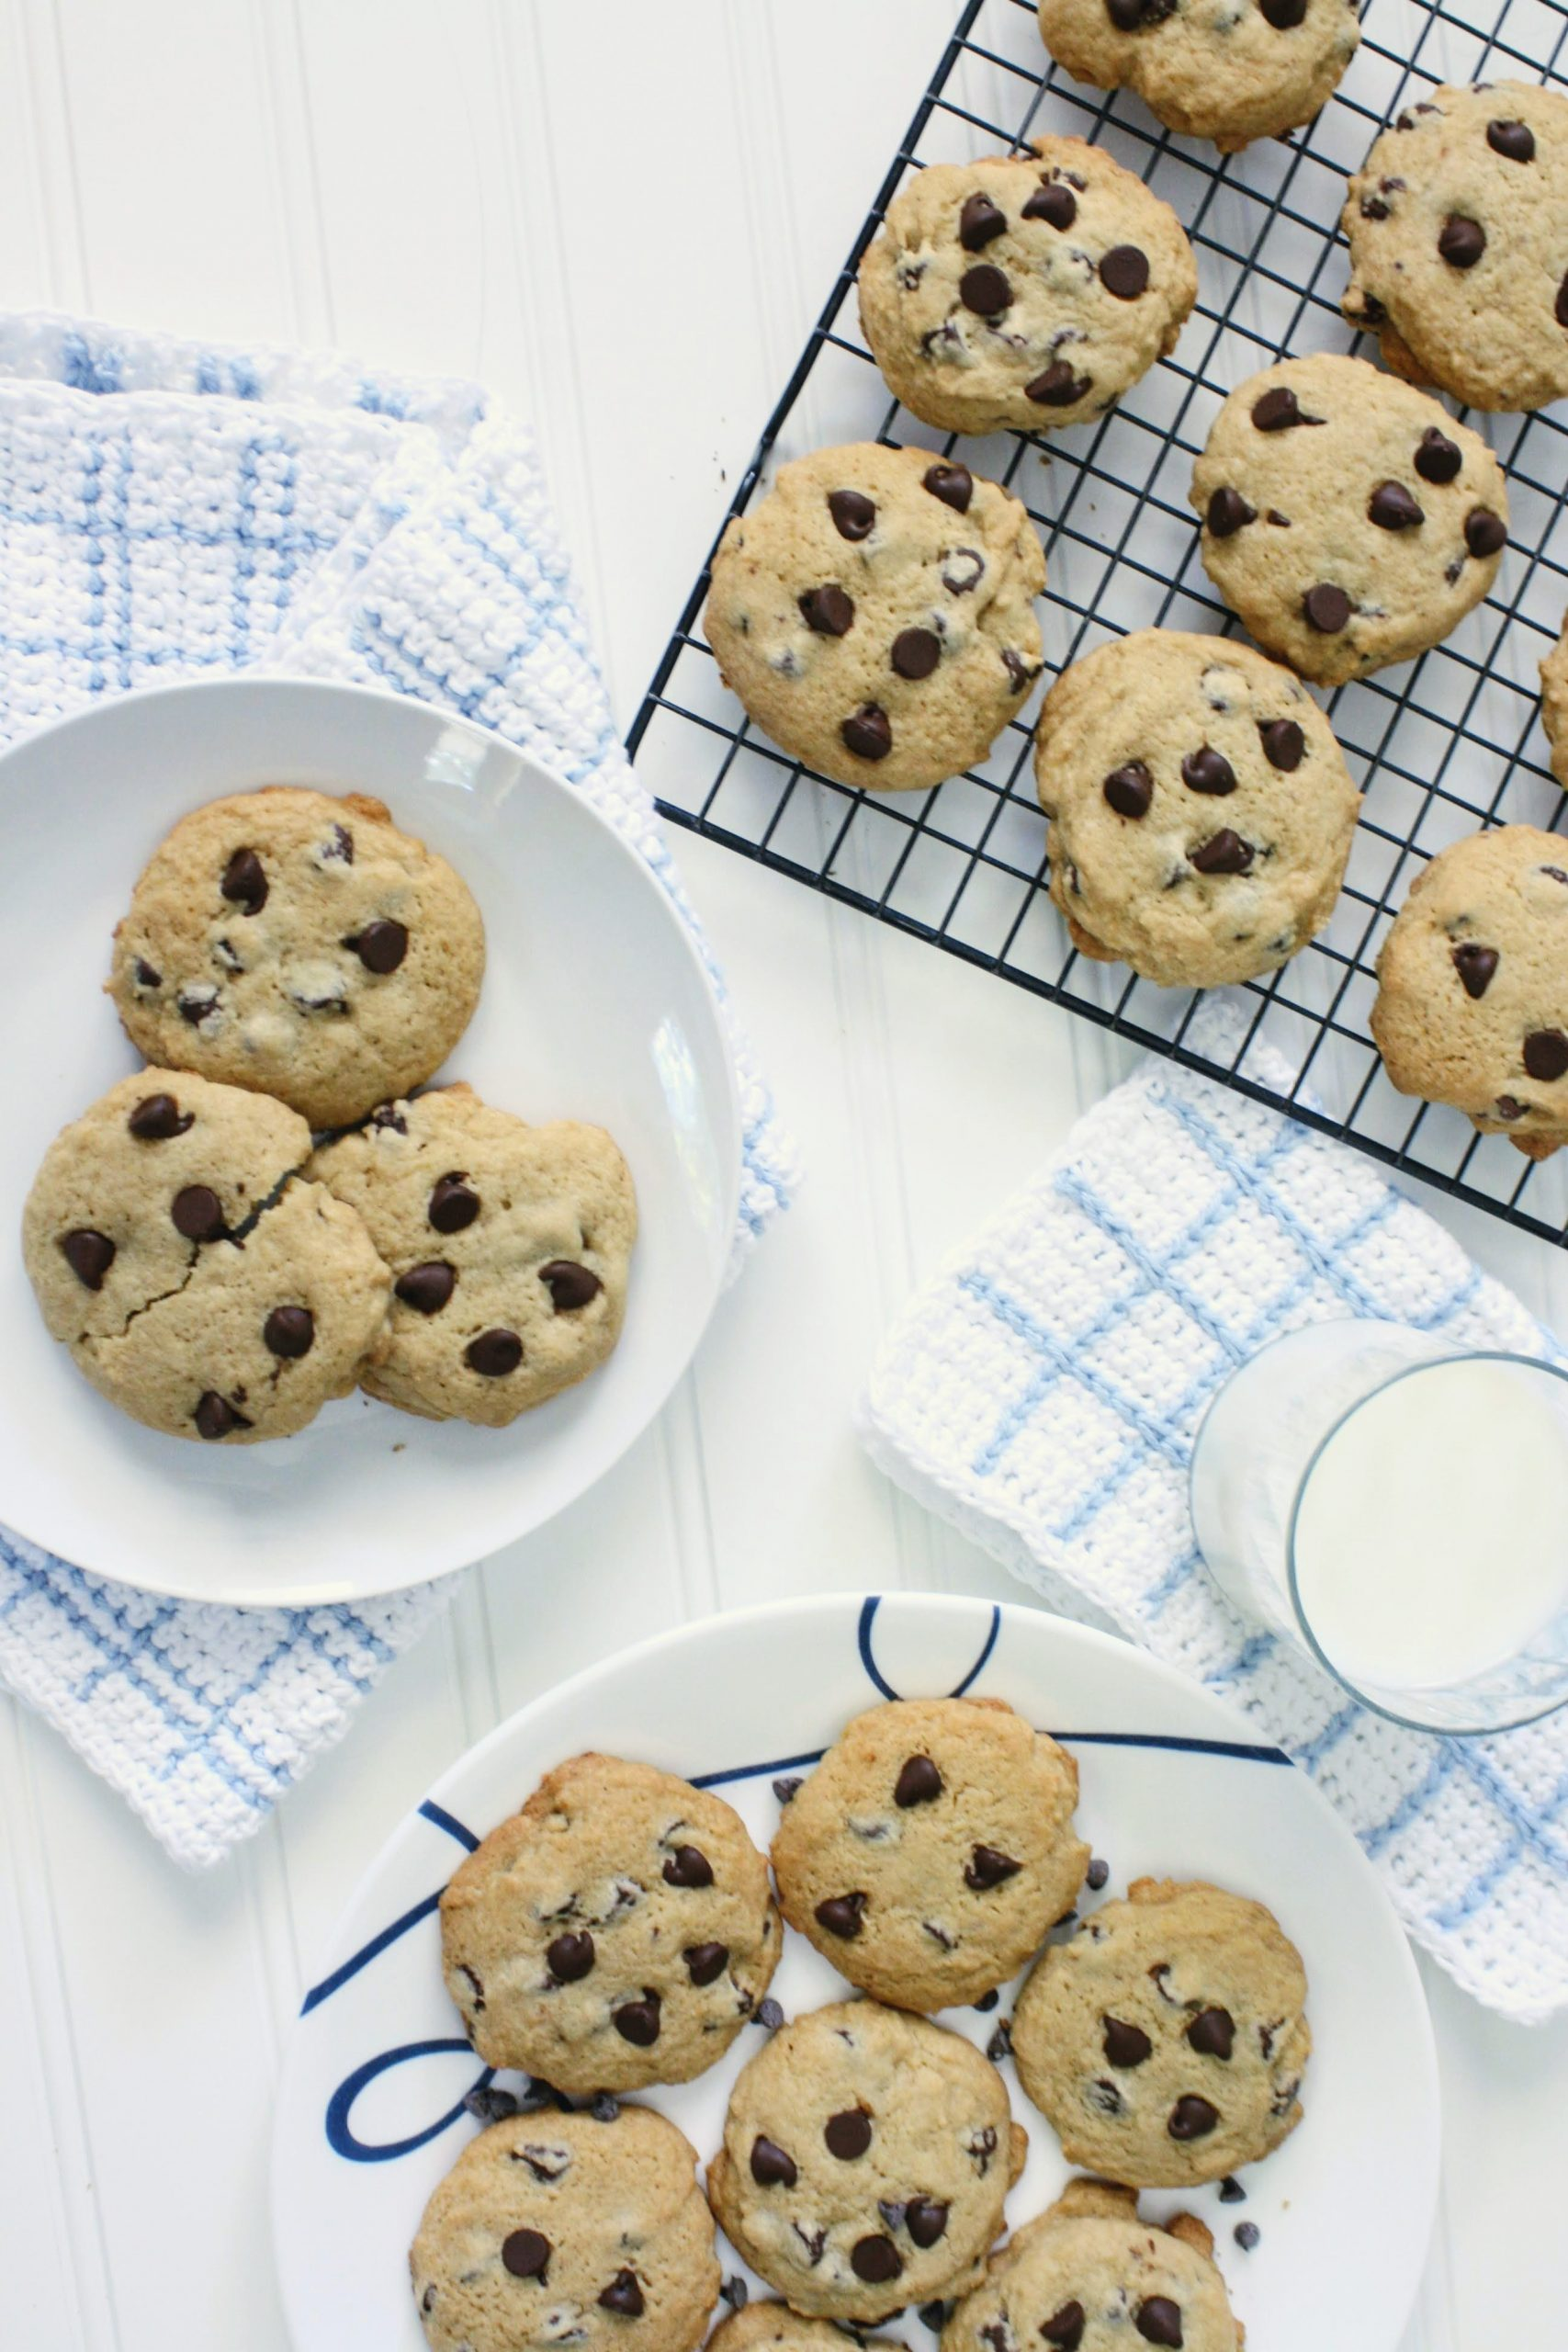 Soft and Fluffy Chocolate Chip Cookie Recipe